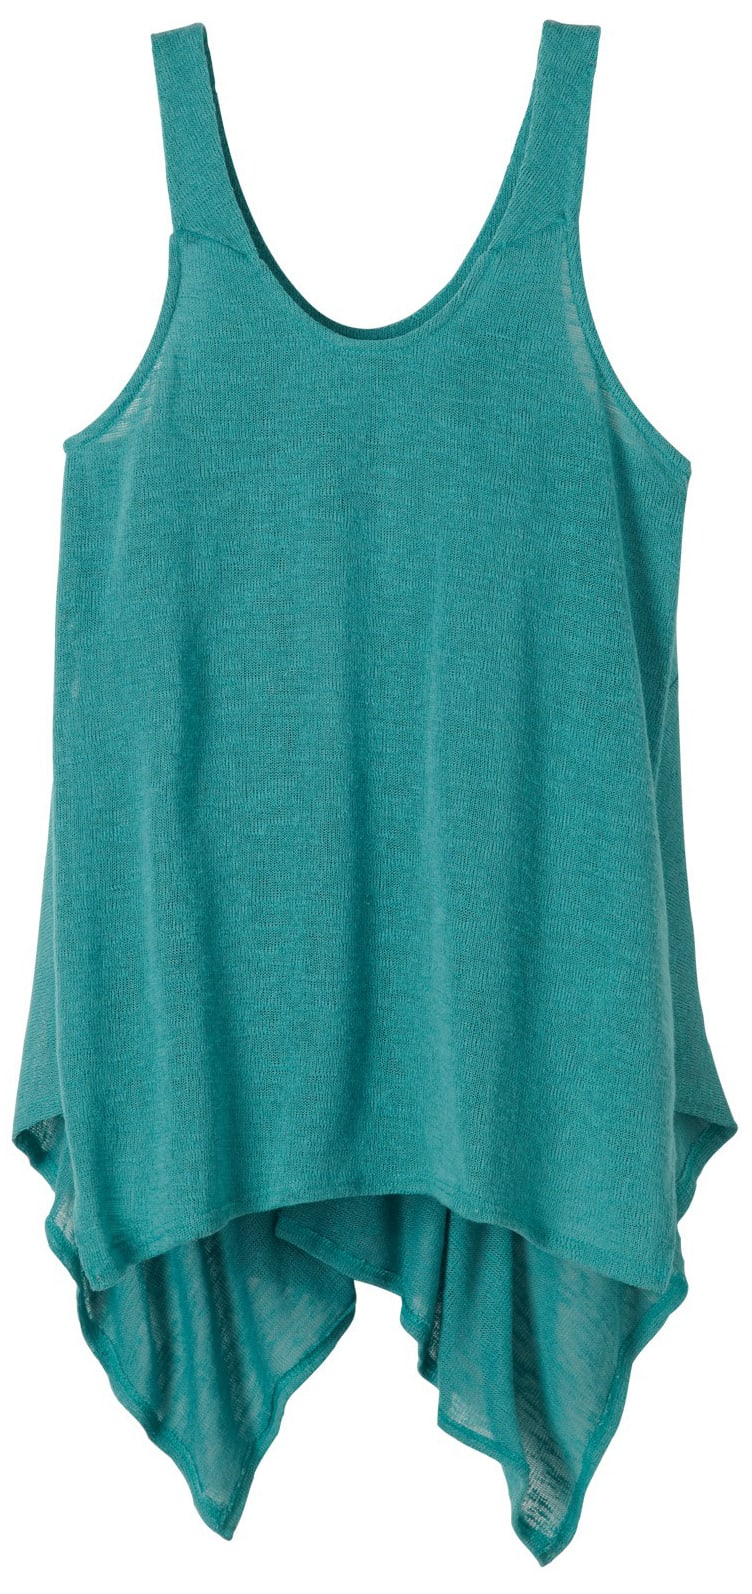 Find the best prices on Womens Tank Tops at 0549sahibi.tk! You could save over 20% on tank tops for women from brands like Billabong, Burton, Neff, Oakley, Roxy, Vans, Volcom and many more.